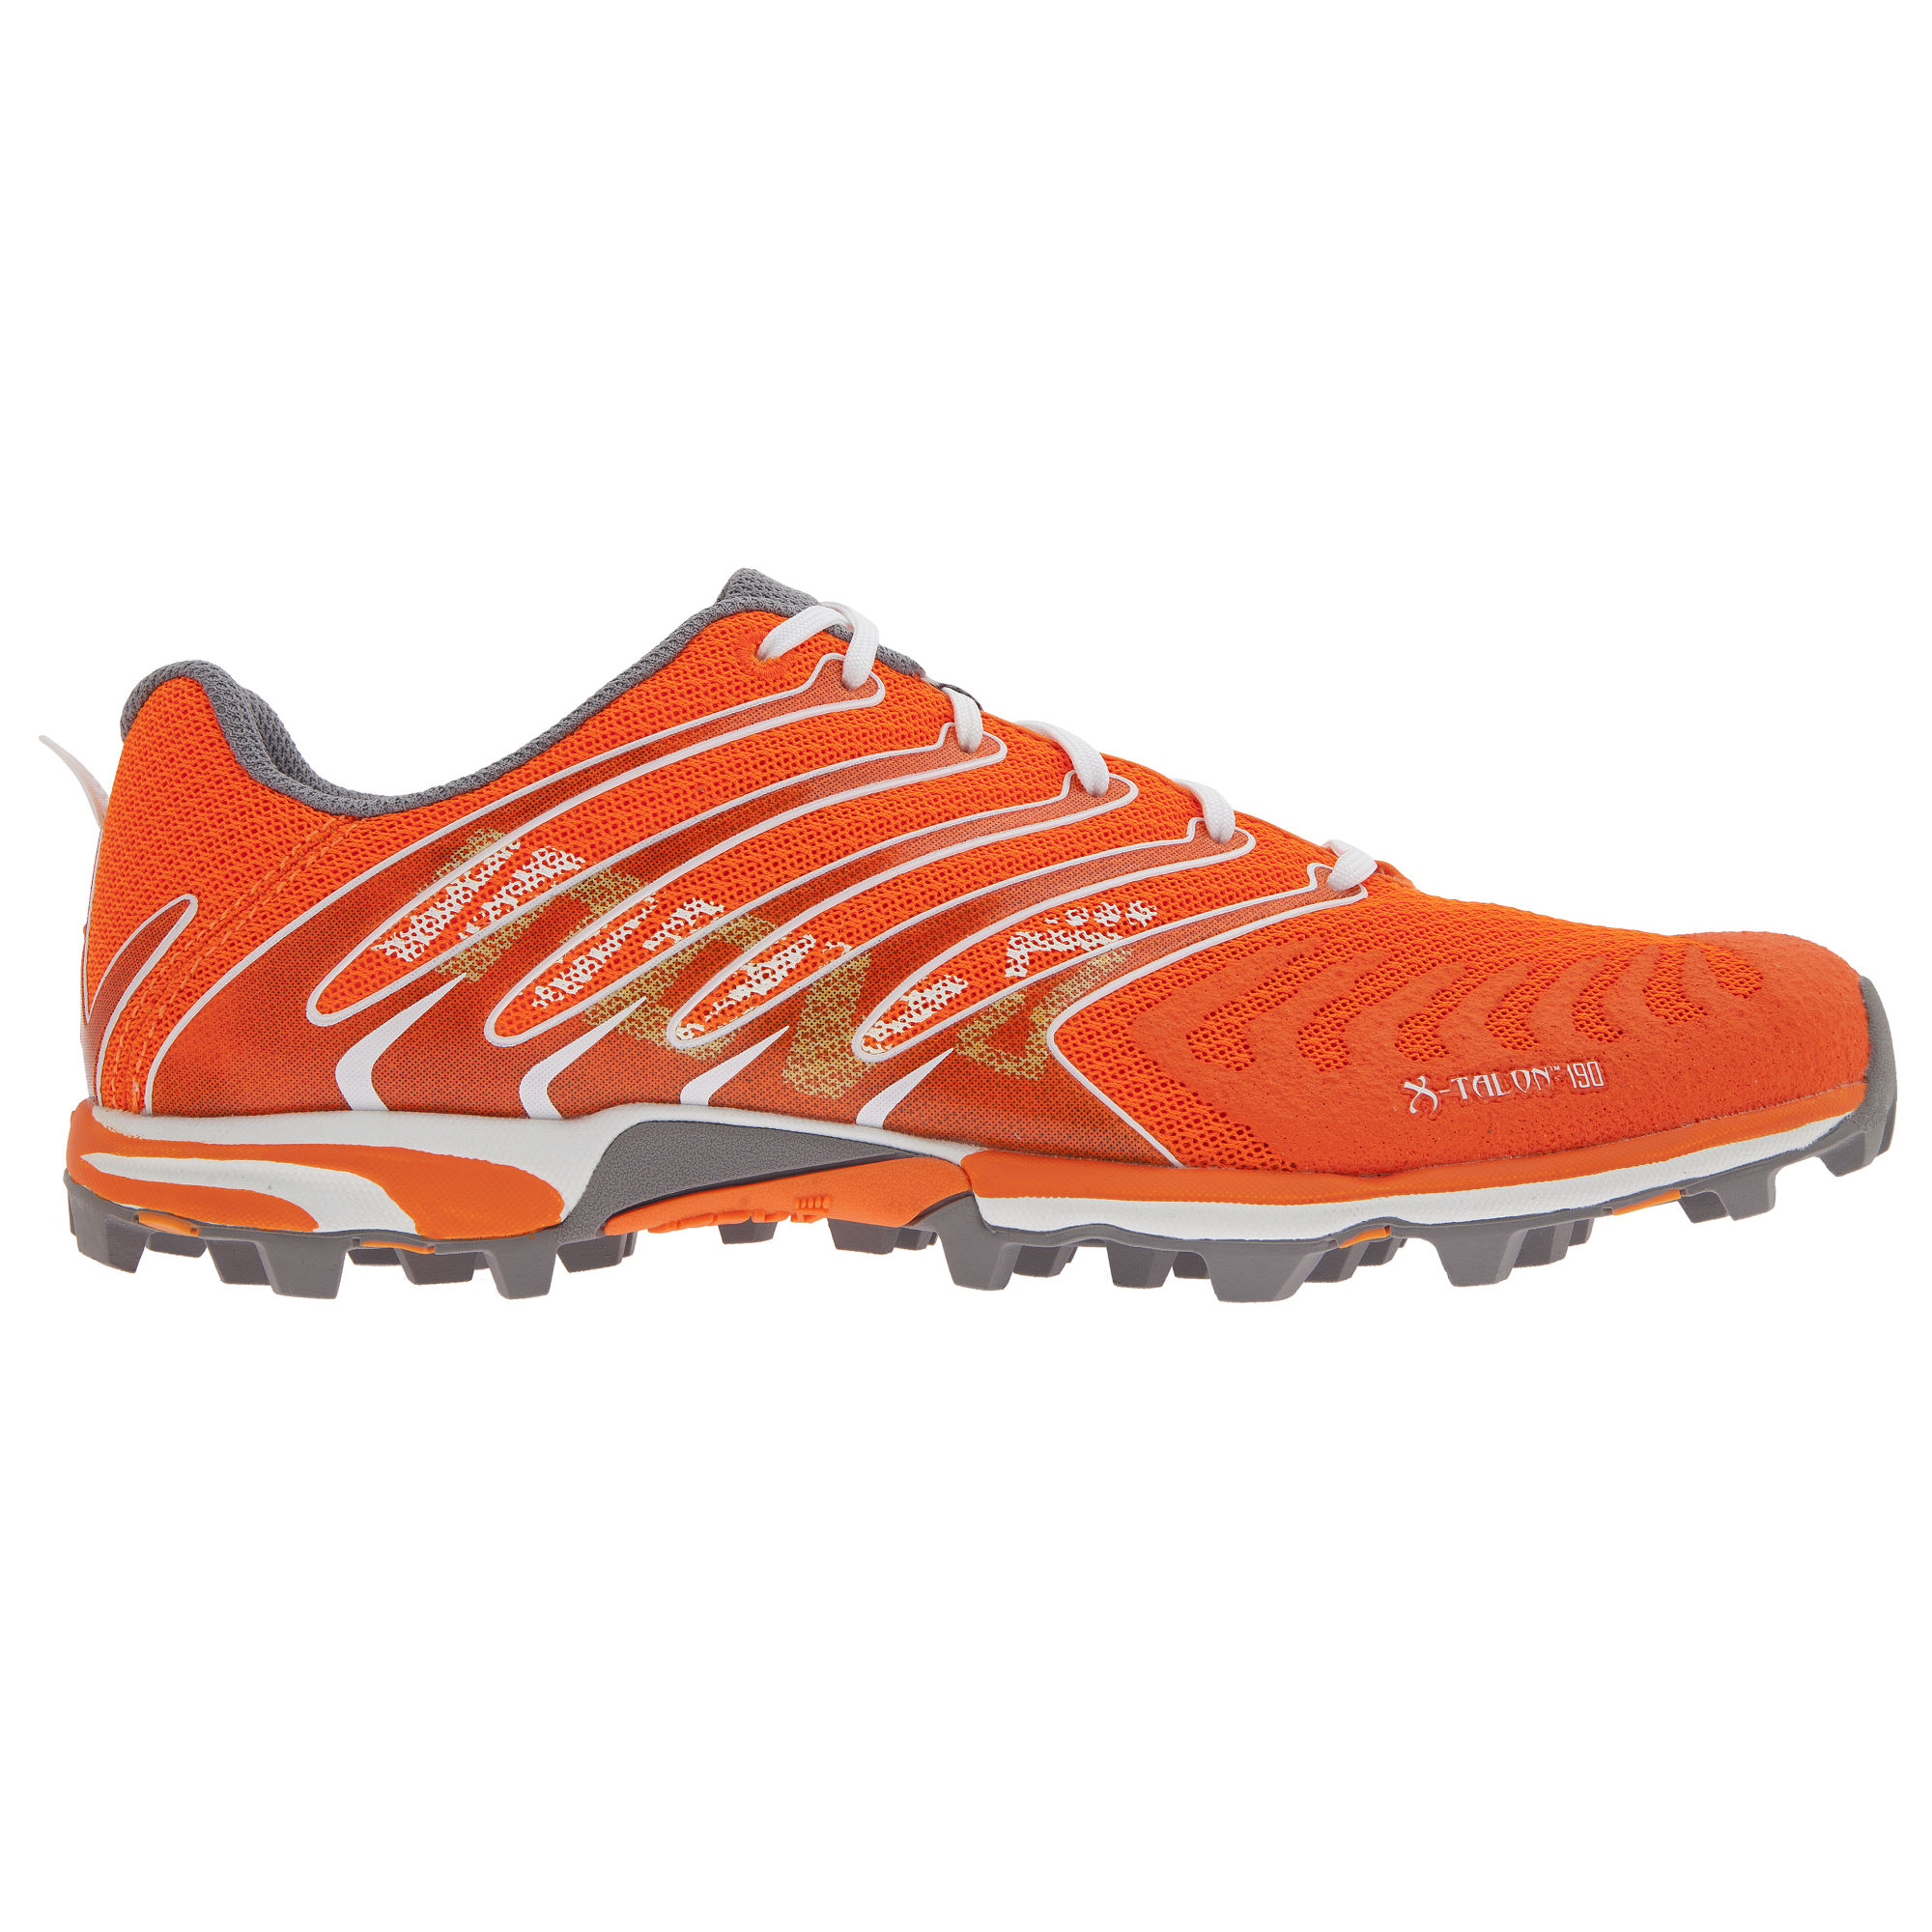 Wiggle | Inov-8 X-Talon 190 Shoes - AW14 | Offroad Running